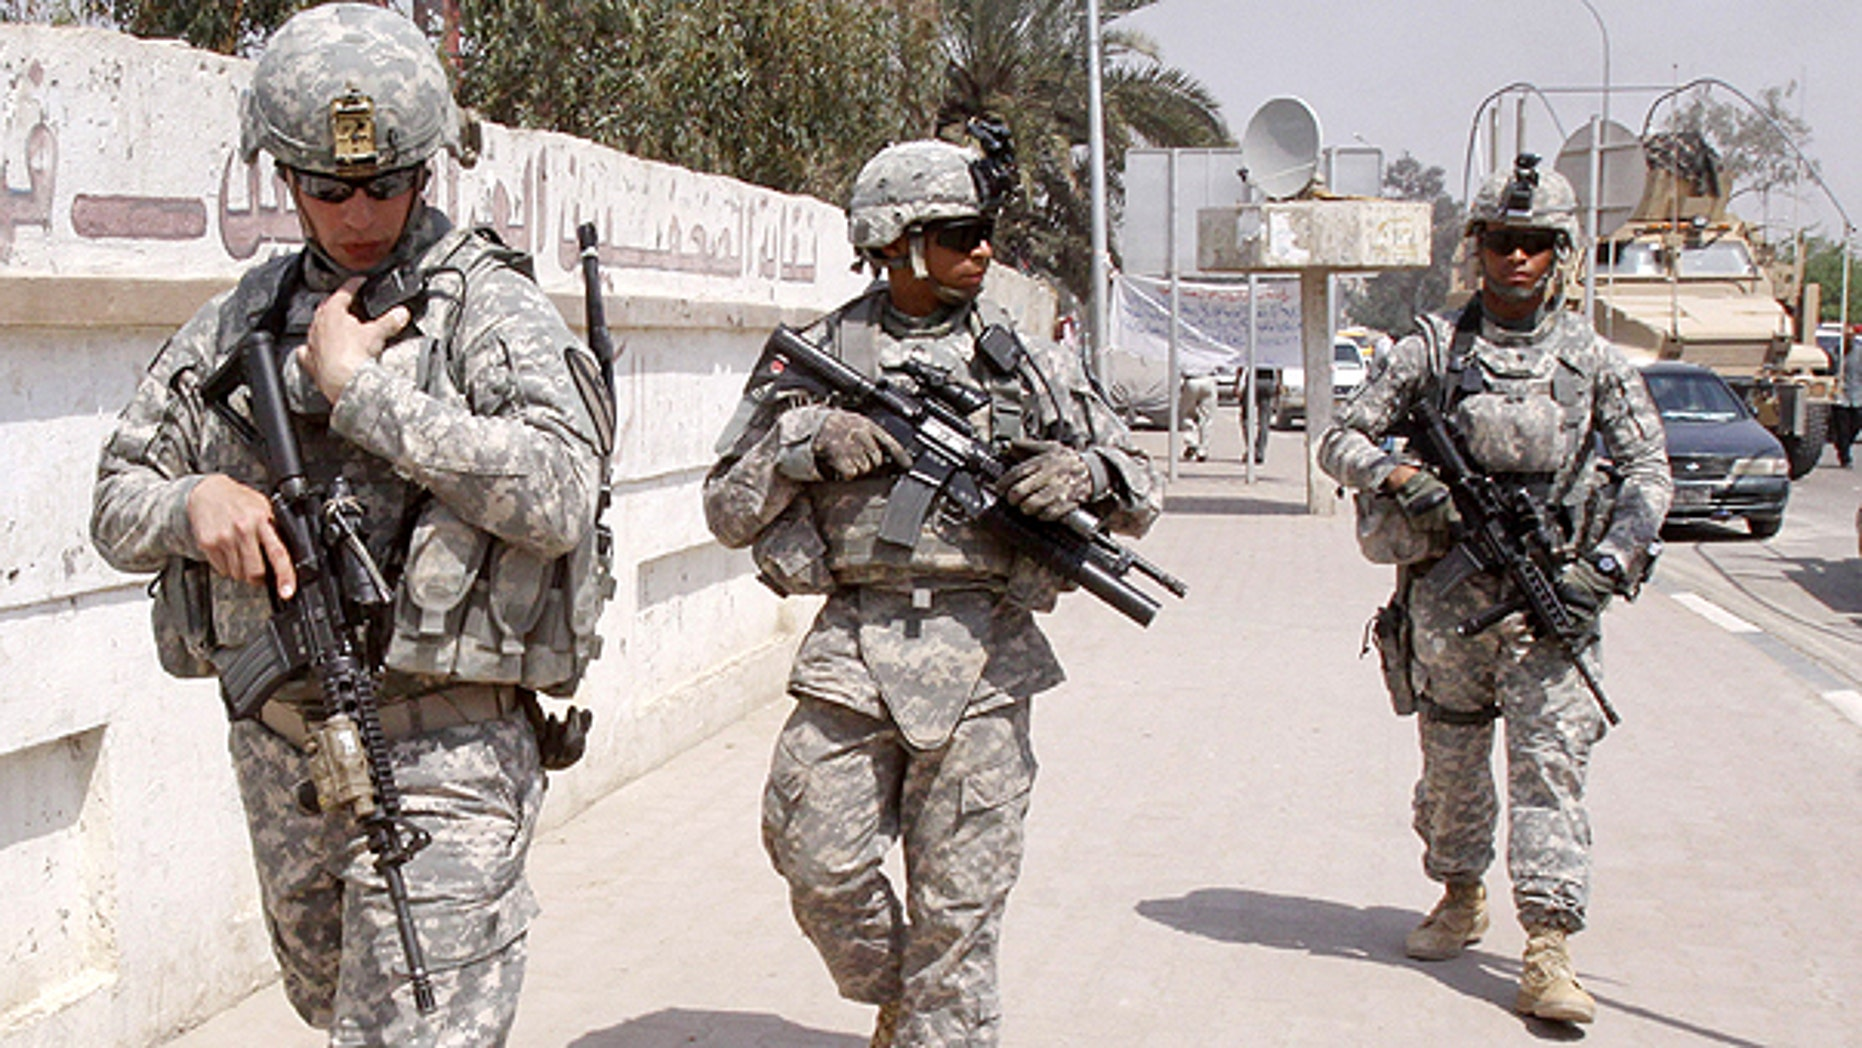 March 23: U.S. troops stand guard outside a local journalists' union office in Basra, Iraq. As the U.S. tries to move from invading power to normal diplomatic partner and the last American troops obligated to be gone by year's end, the protection of American diplomats will fall almost entirely to private contractors and Iraqi security forces.